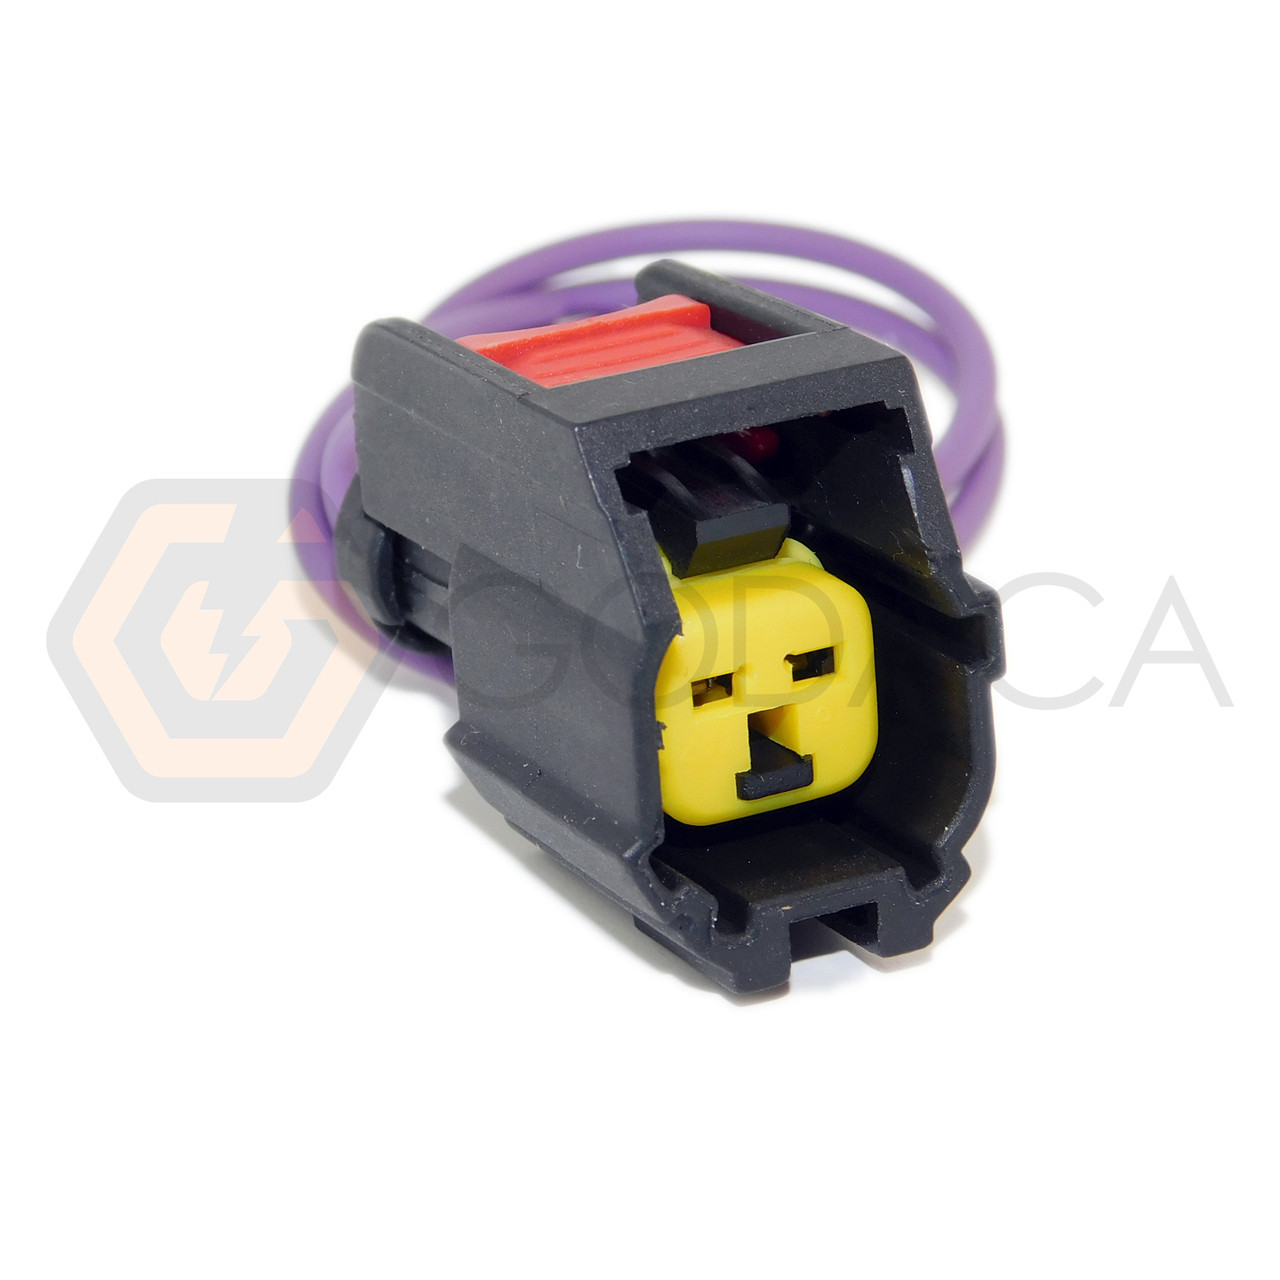 hight resolution of 1 x connector pigtail female fuel injector electrical wire harness 2 way godaca llc